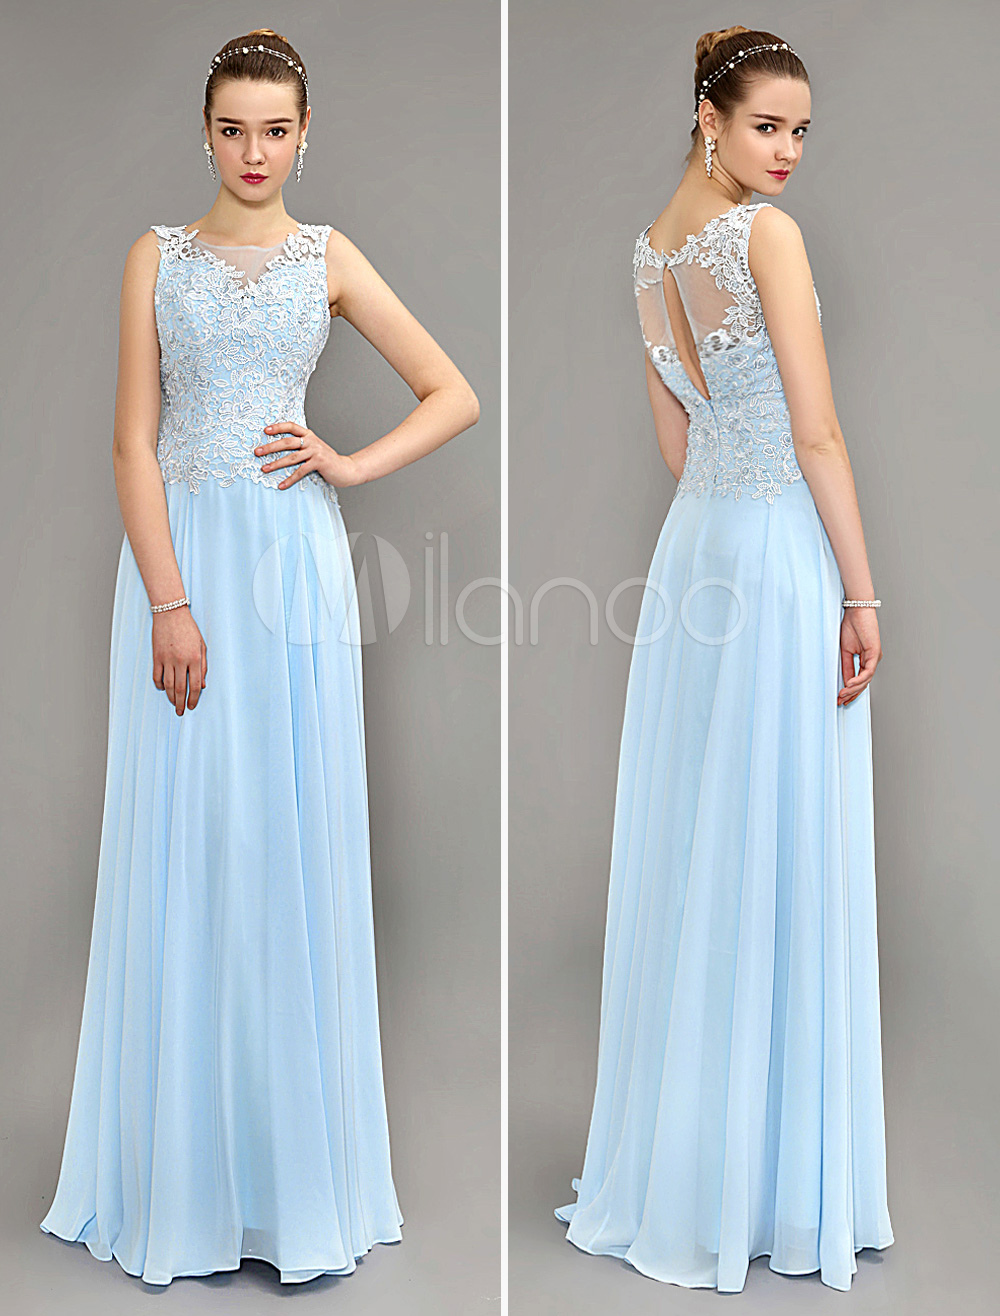 Baby Blue Evening Dress Floor Length Chiffon Party Dress Illusion Neck Floor Length Homecoming Dress With Key Hole Back